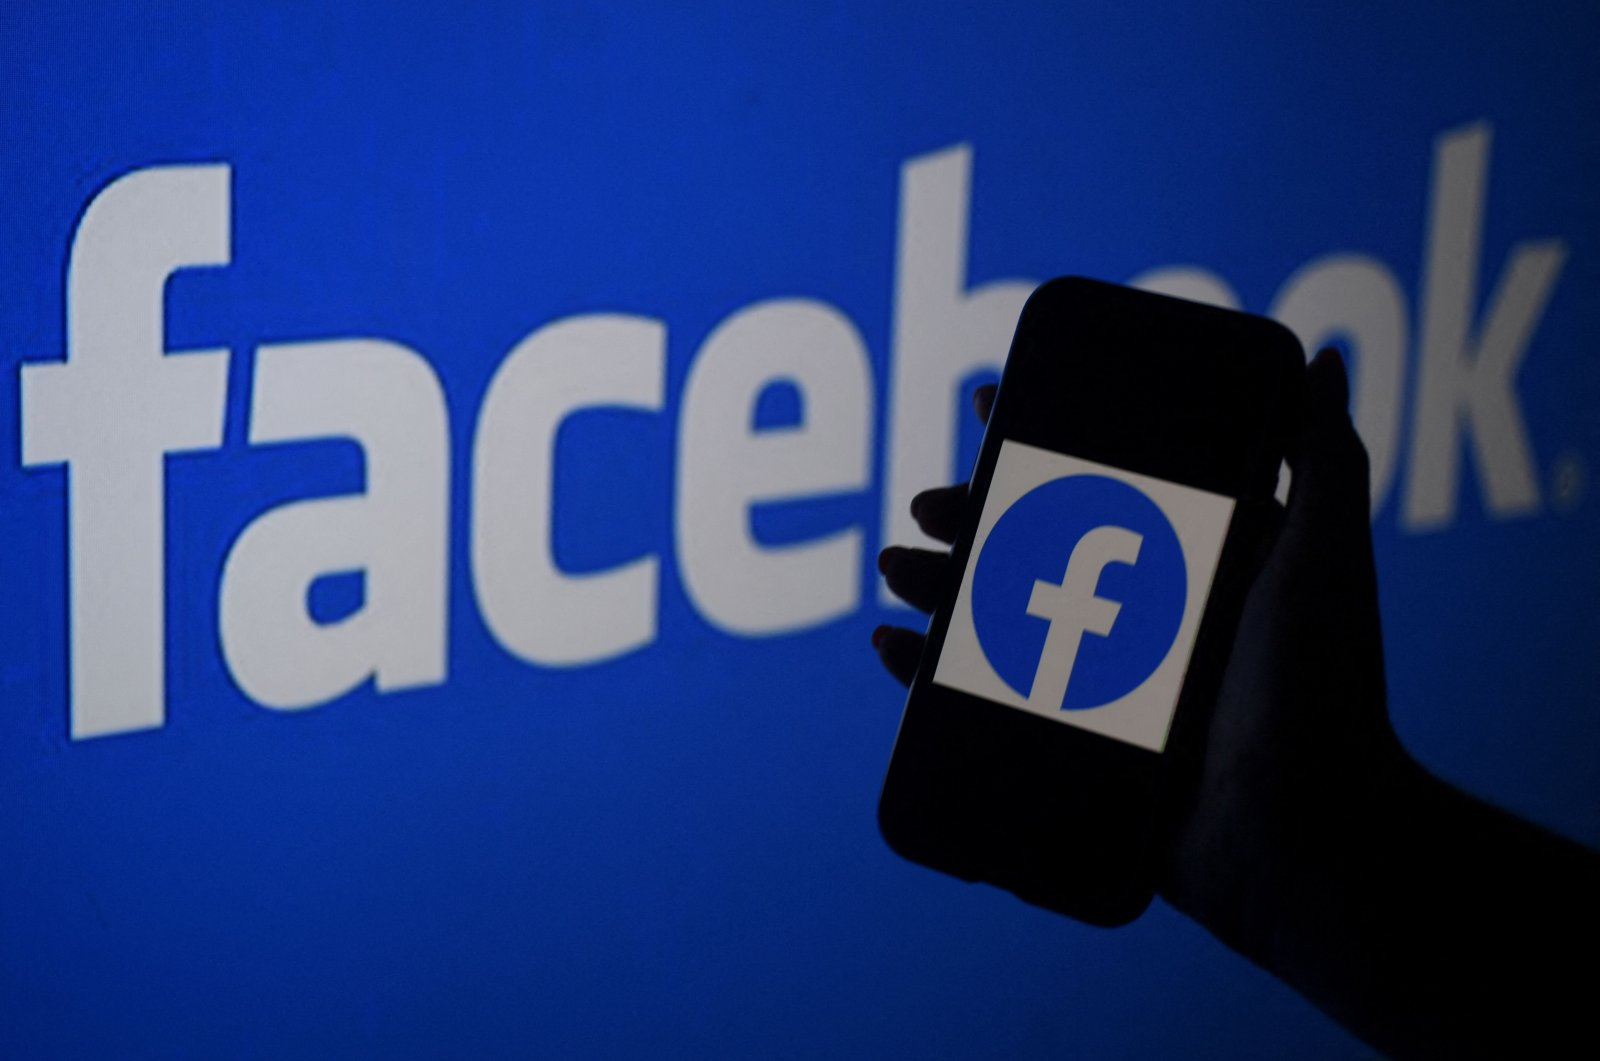 In this file photo illustration, a smart phone screen displays the logo of Facebook on a Facebook website background, in Arlington, Virginia, U.S., April 7, 2021. (AFP Photo)